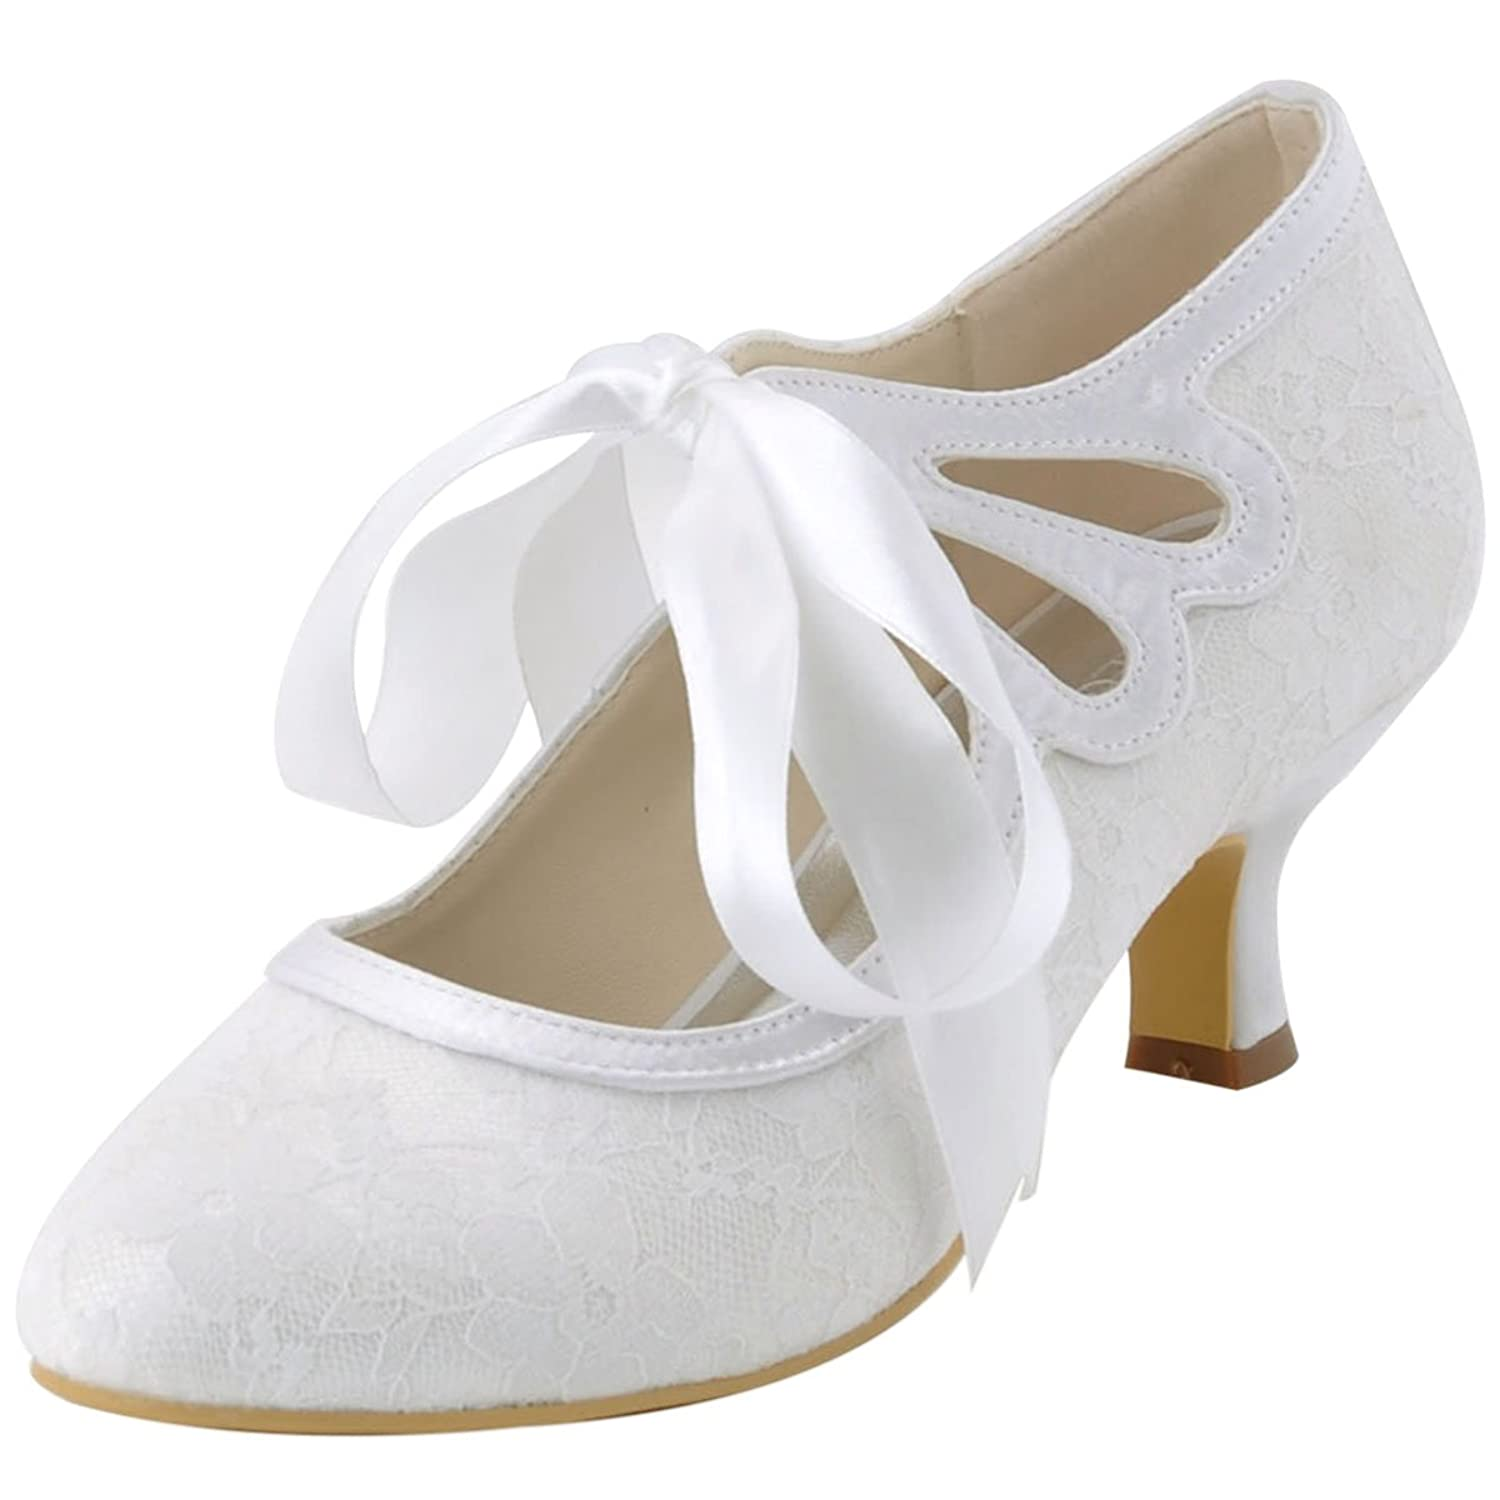 1960s Style Shoes ElegantPark HC1521 Womens Mary Jane Closed Toe Low Heel Pumps Lace Wedding Dress Shoes $48.95 AT vintagedancer.com